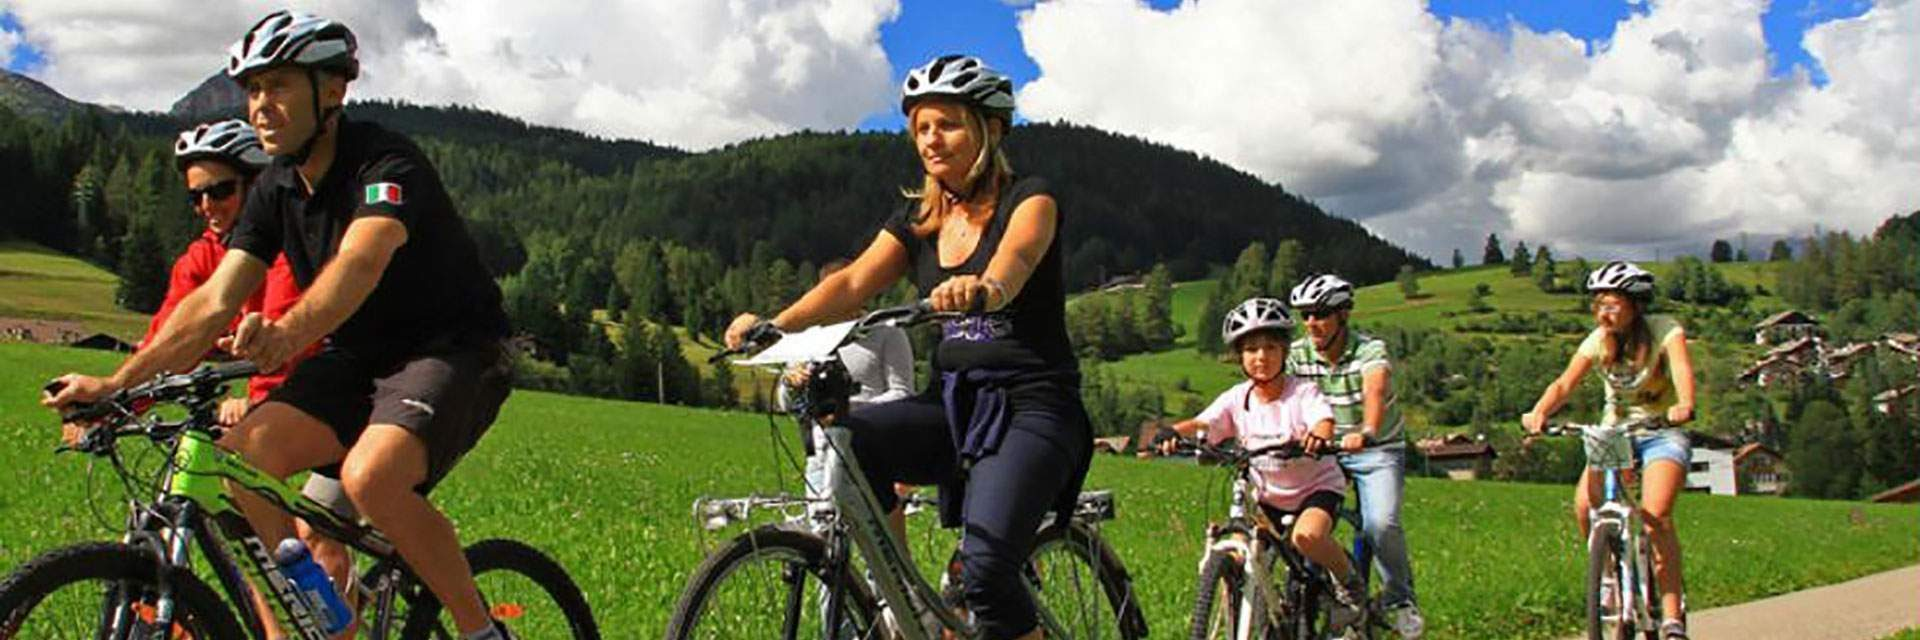 Cycle route | Val di Fassa Sport & Outdoor